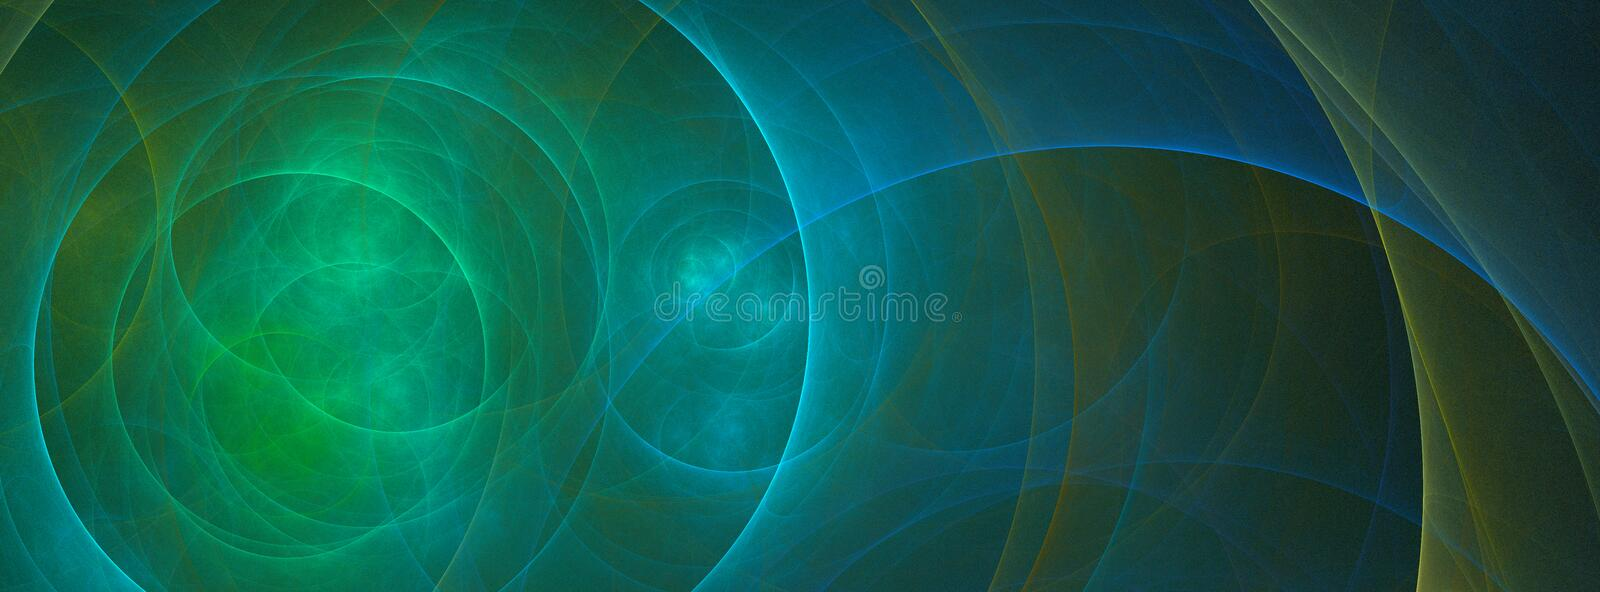 3D generated abstract light colored background. Ideal for overlay stock illustration